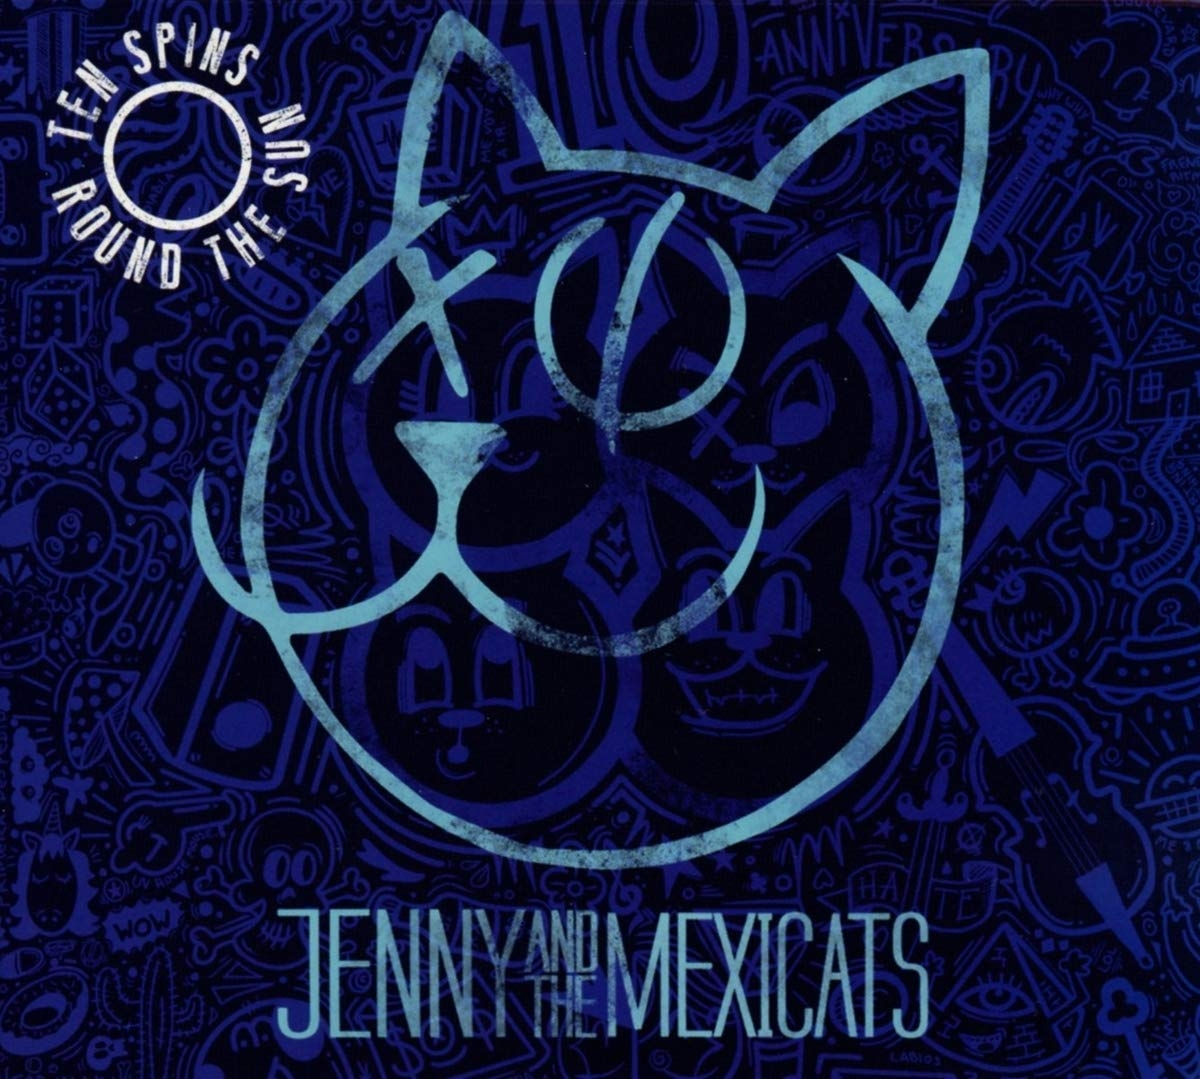 world 10 18 jenny mexicats14 09